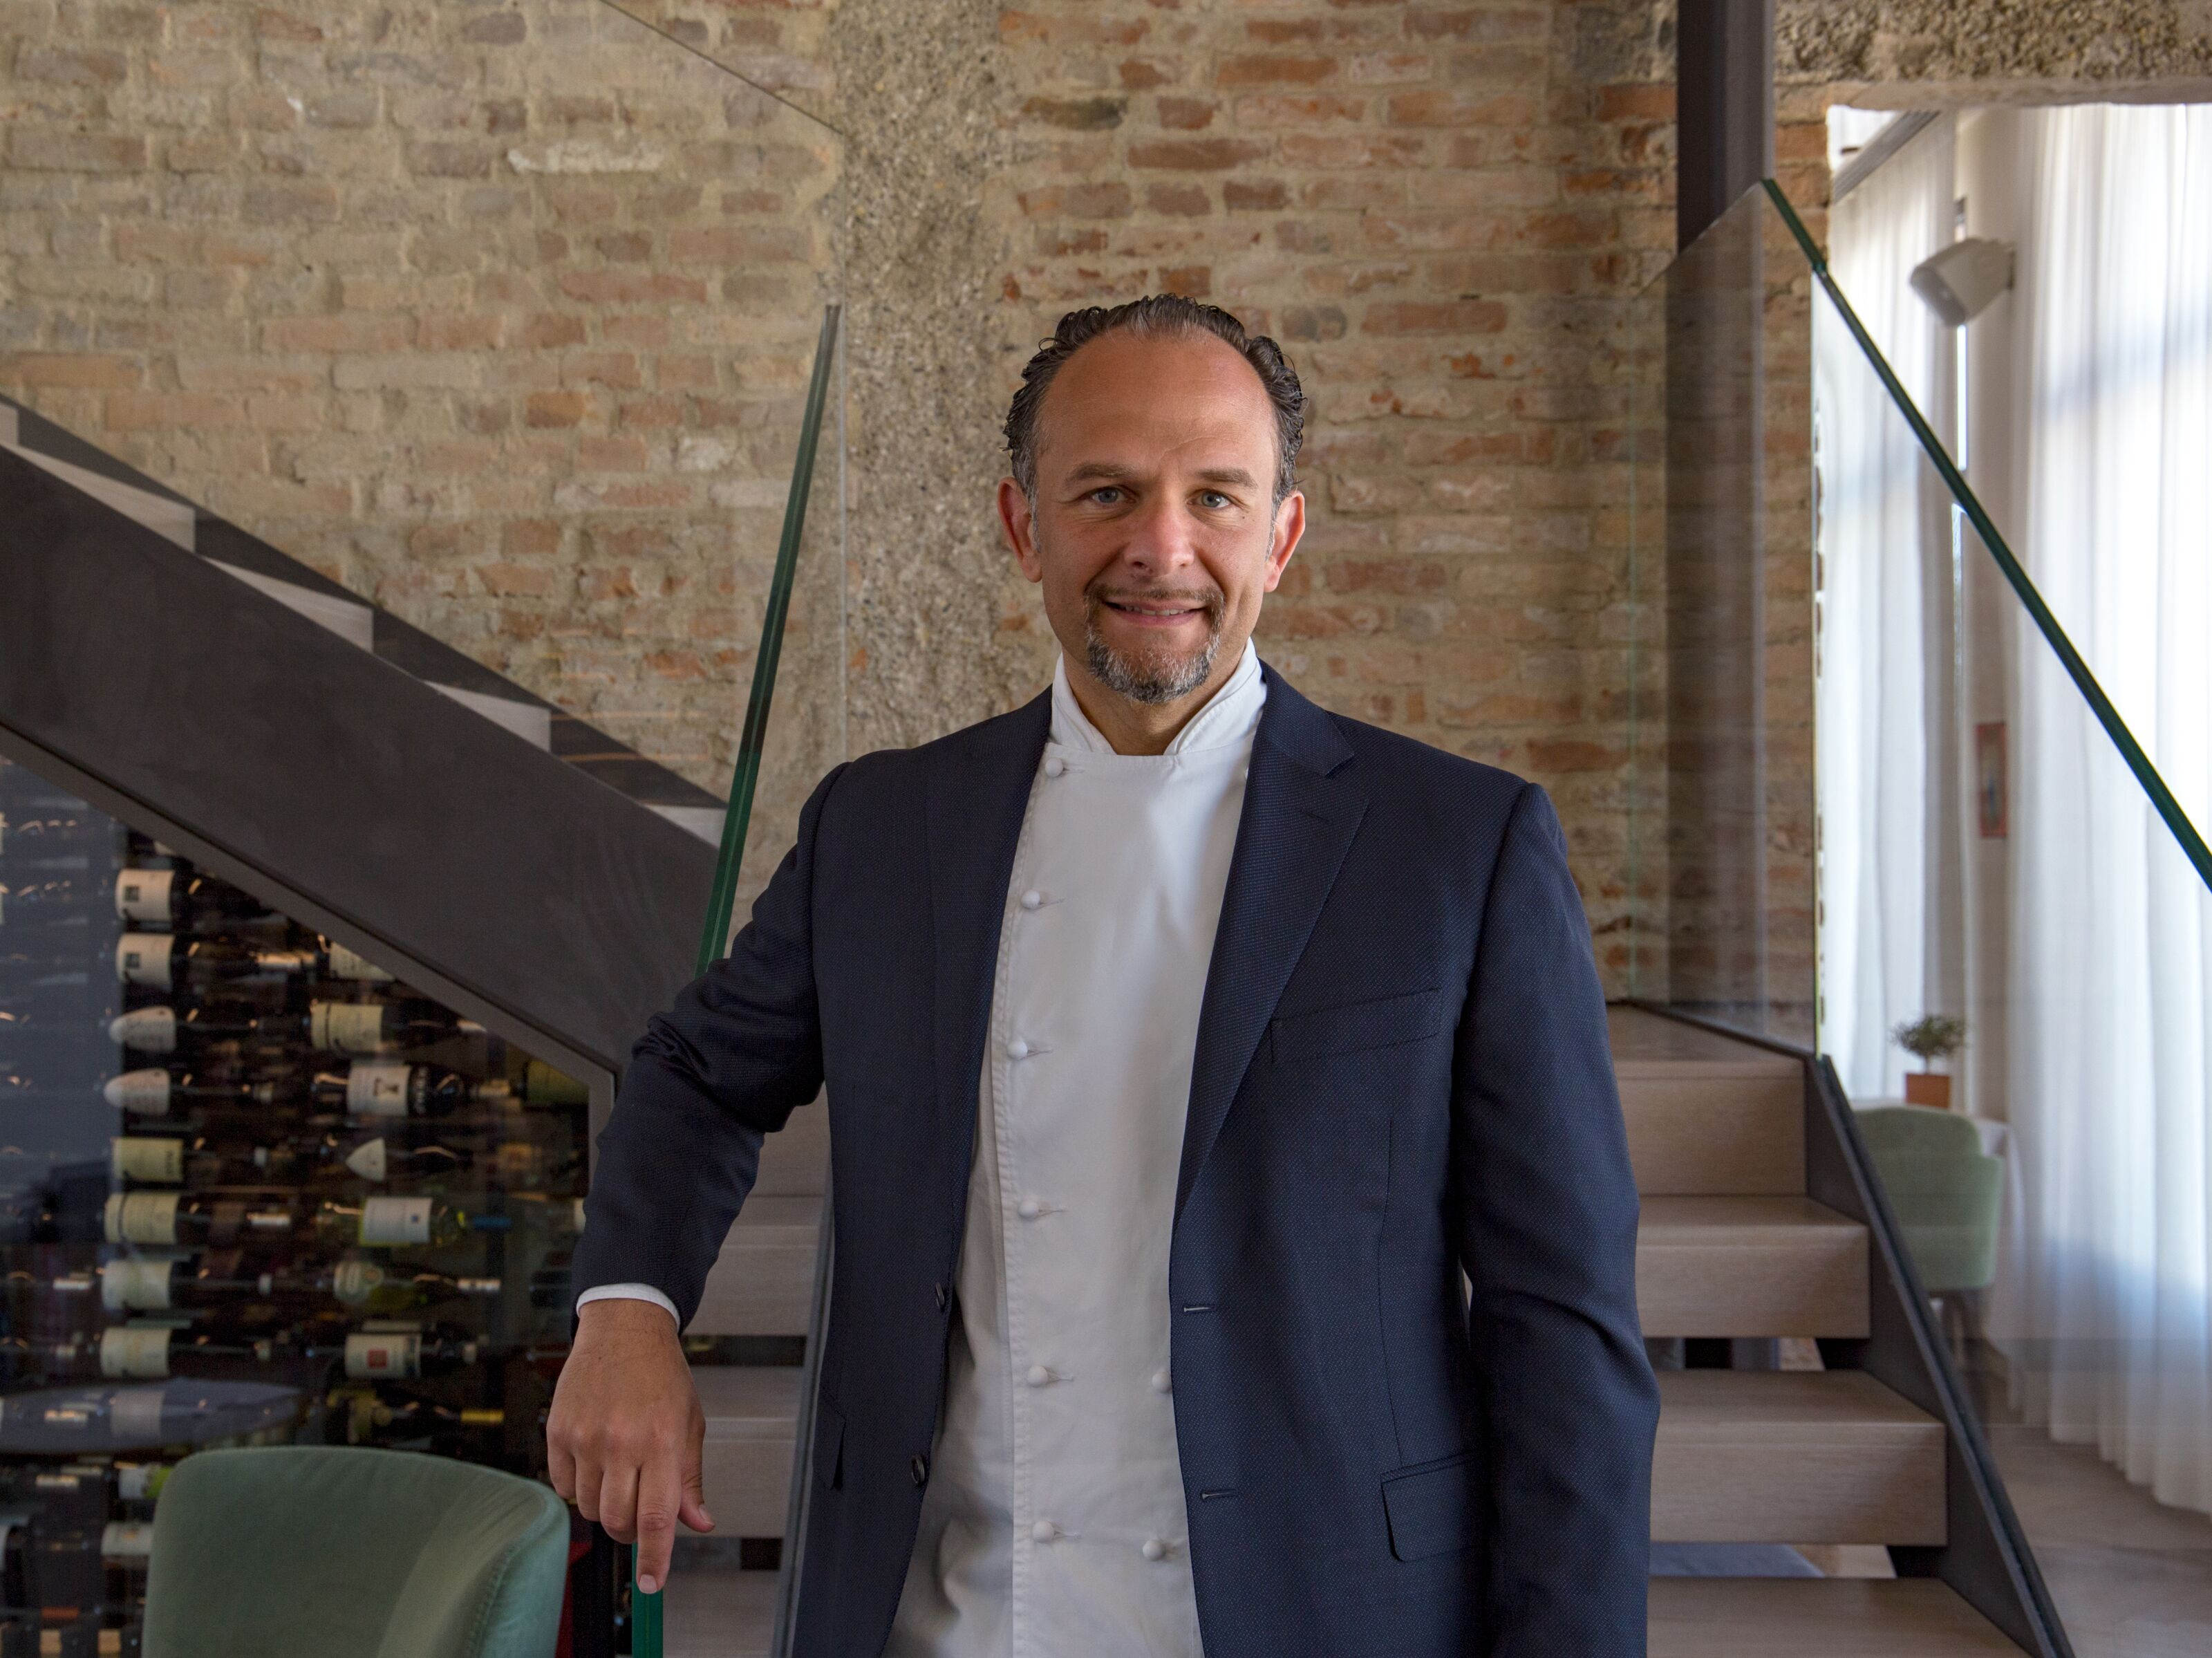 Fabio Trabocchi, Michelin-starred chef, highlights tradition and seasonality